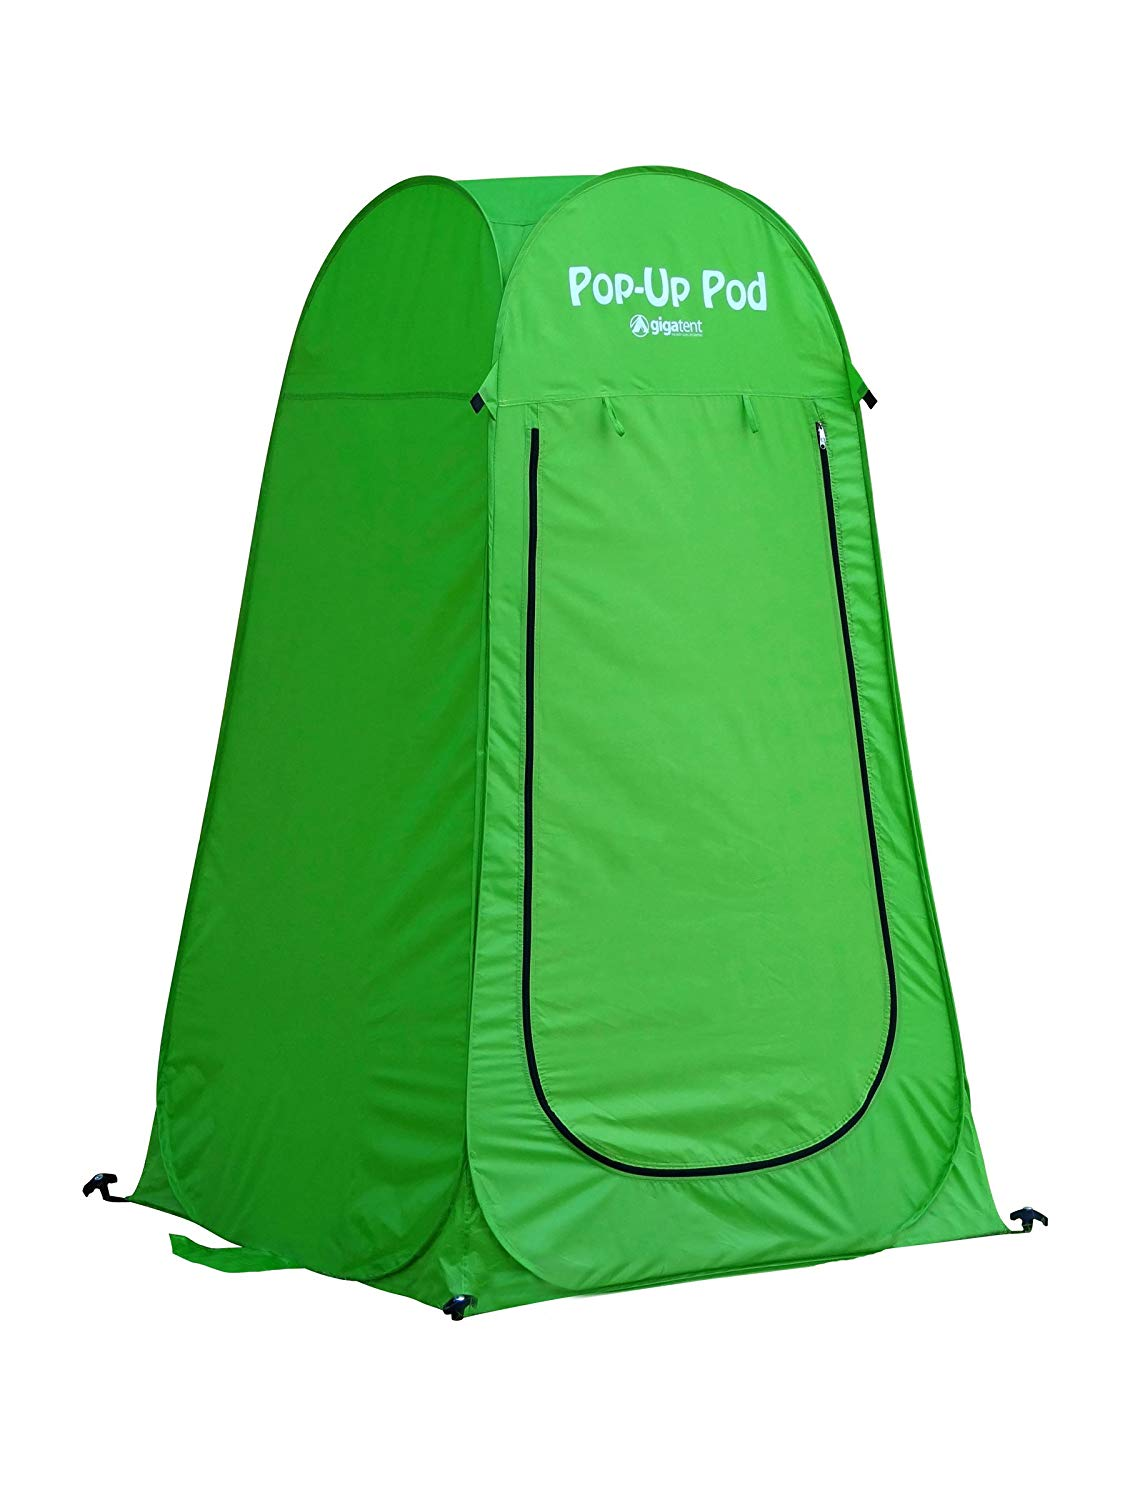 Changing Tent Portable Outdoor Pop Up Shower Privacy Camping Toilet w// Carry Bag